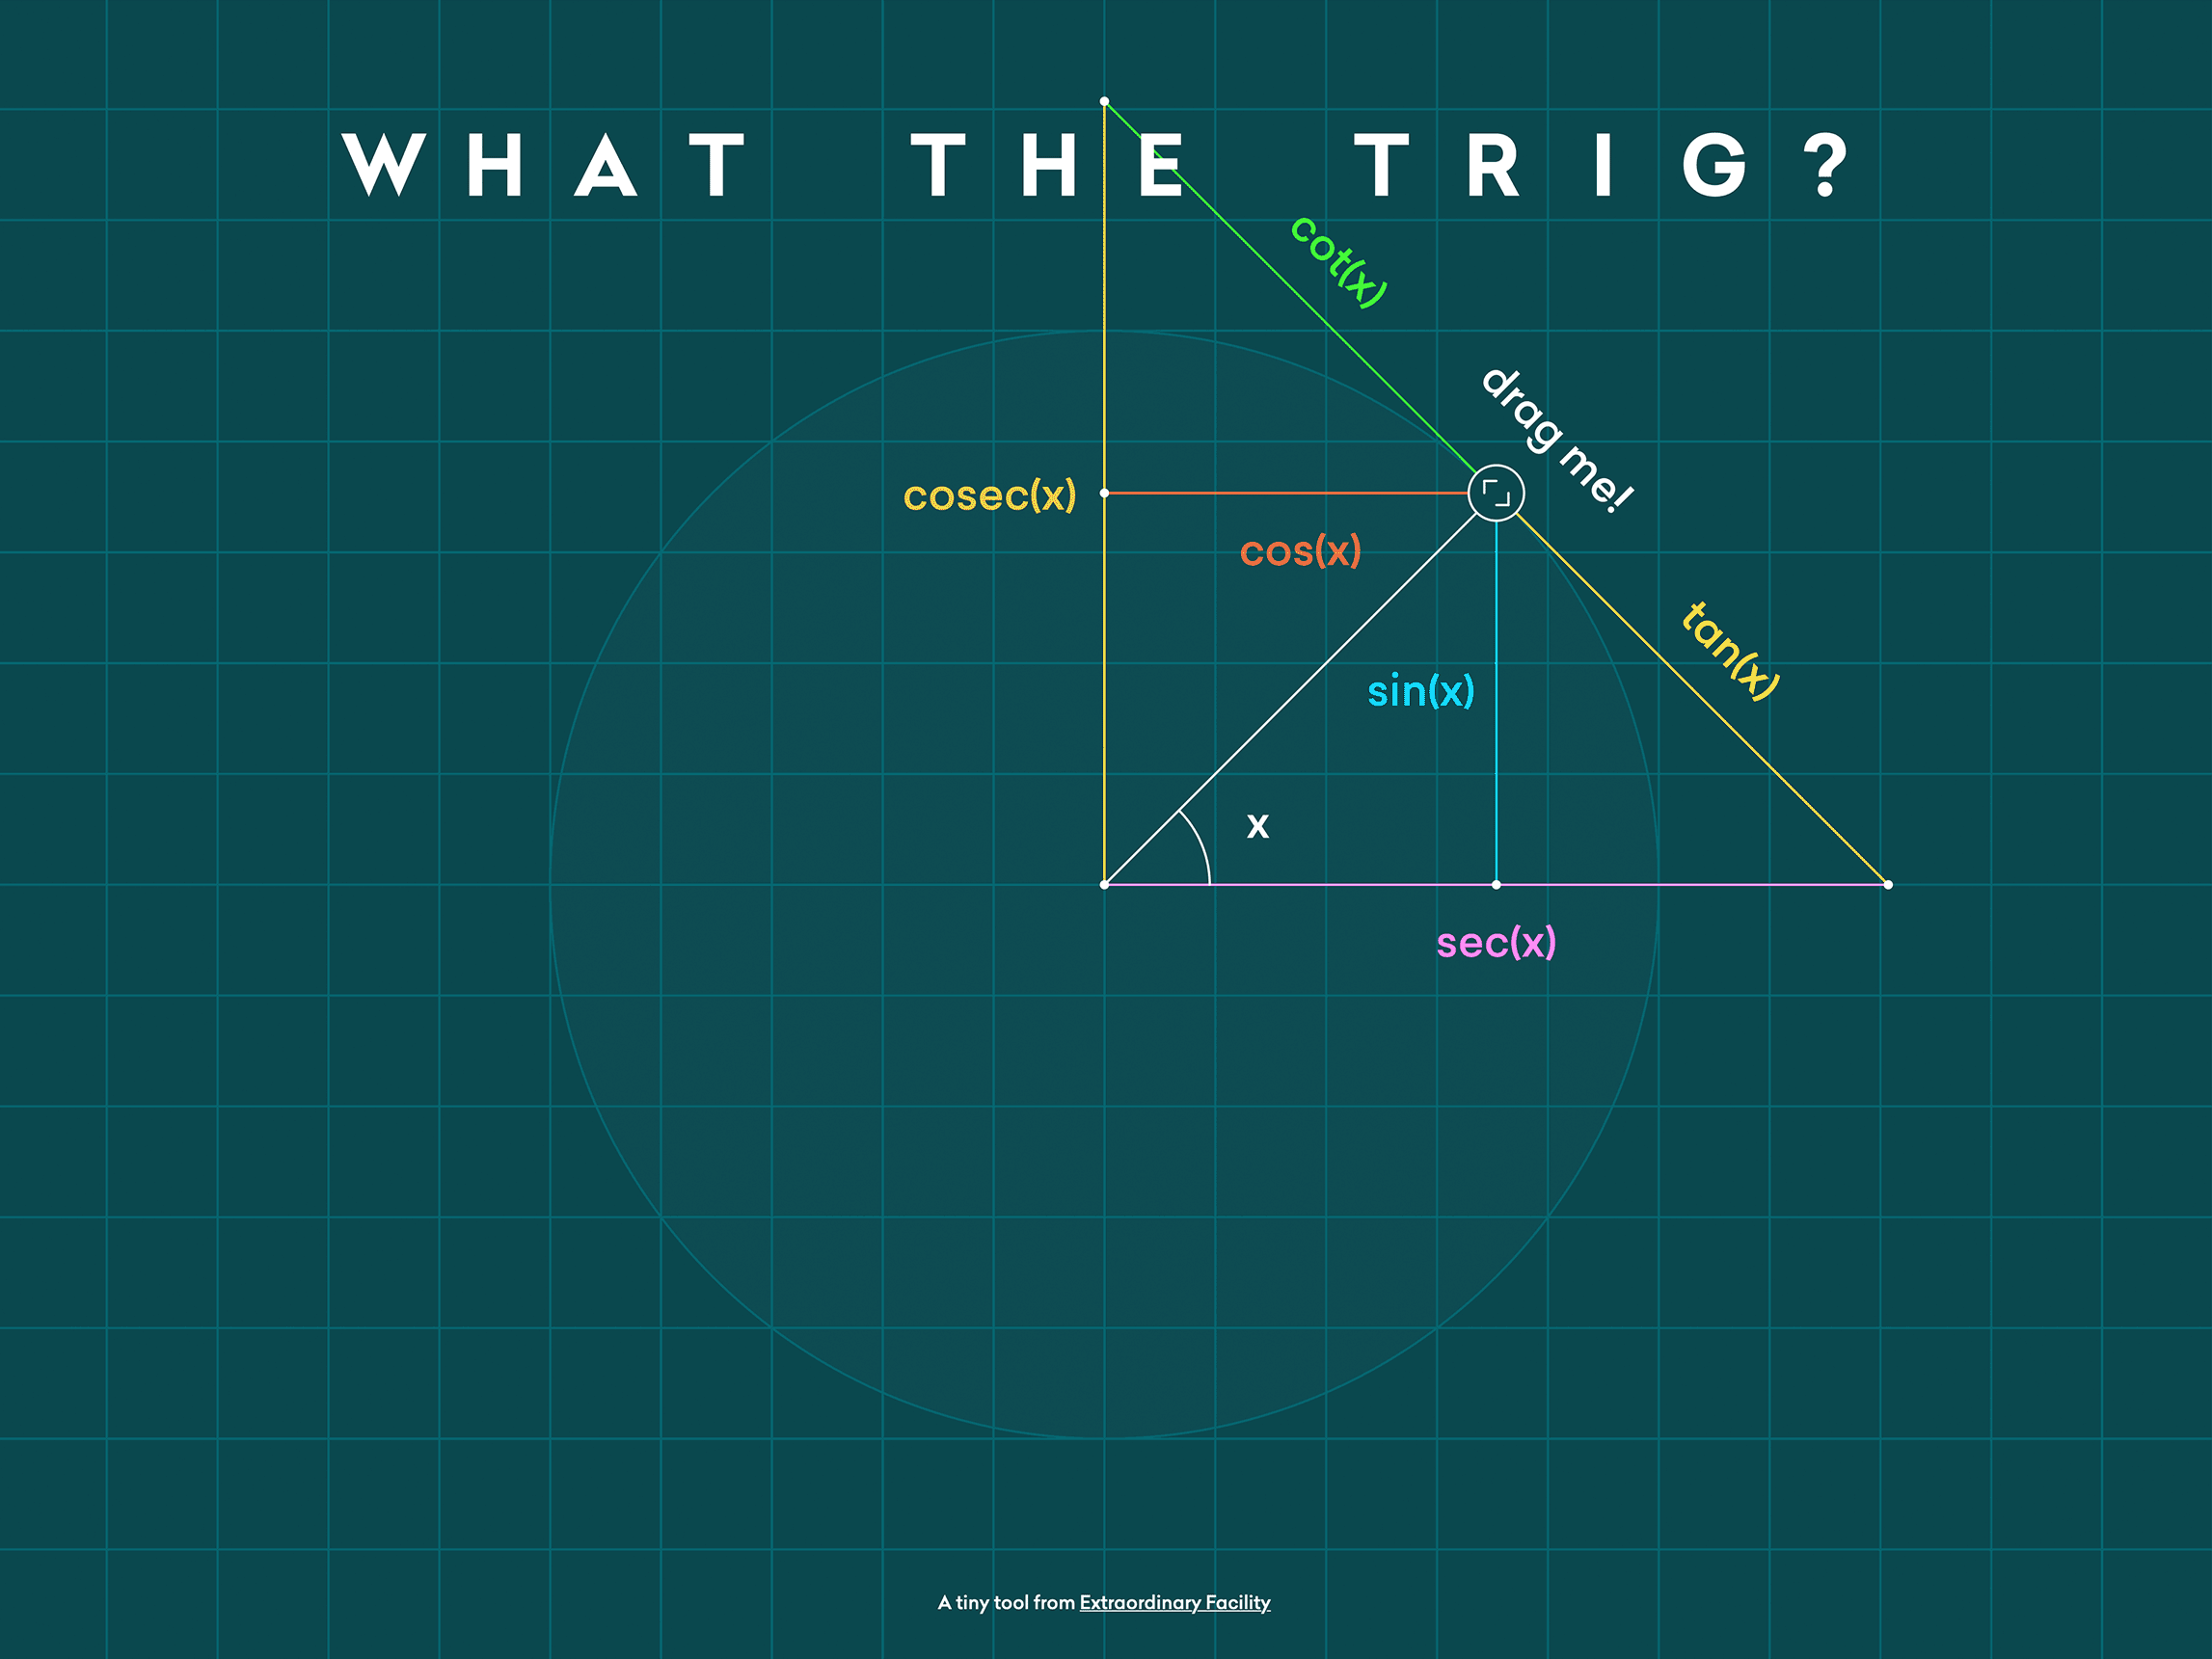 What The Trig?